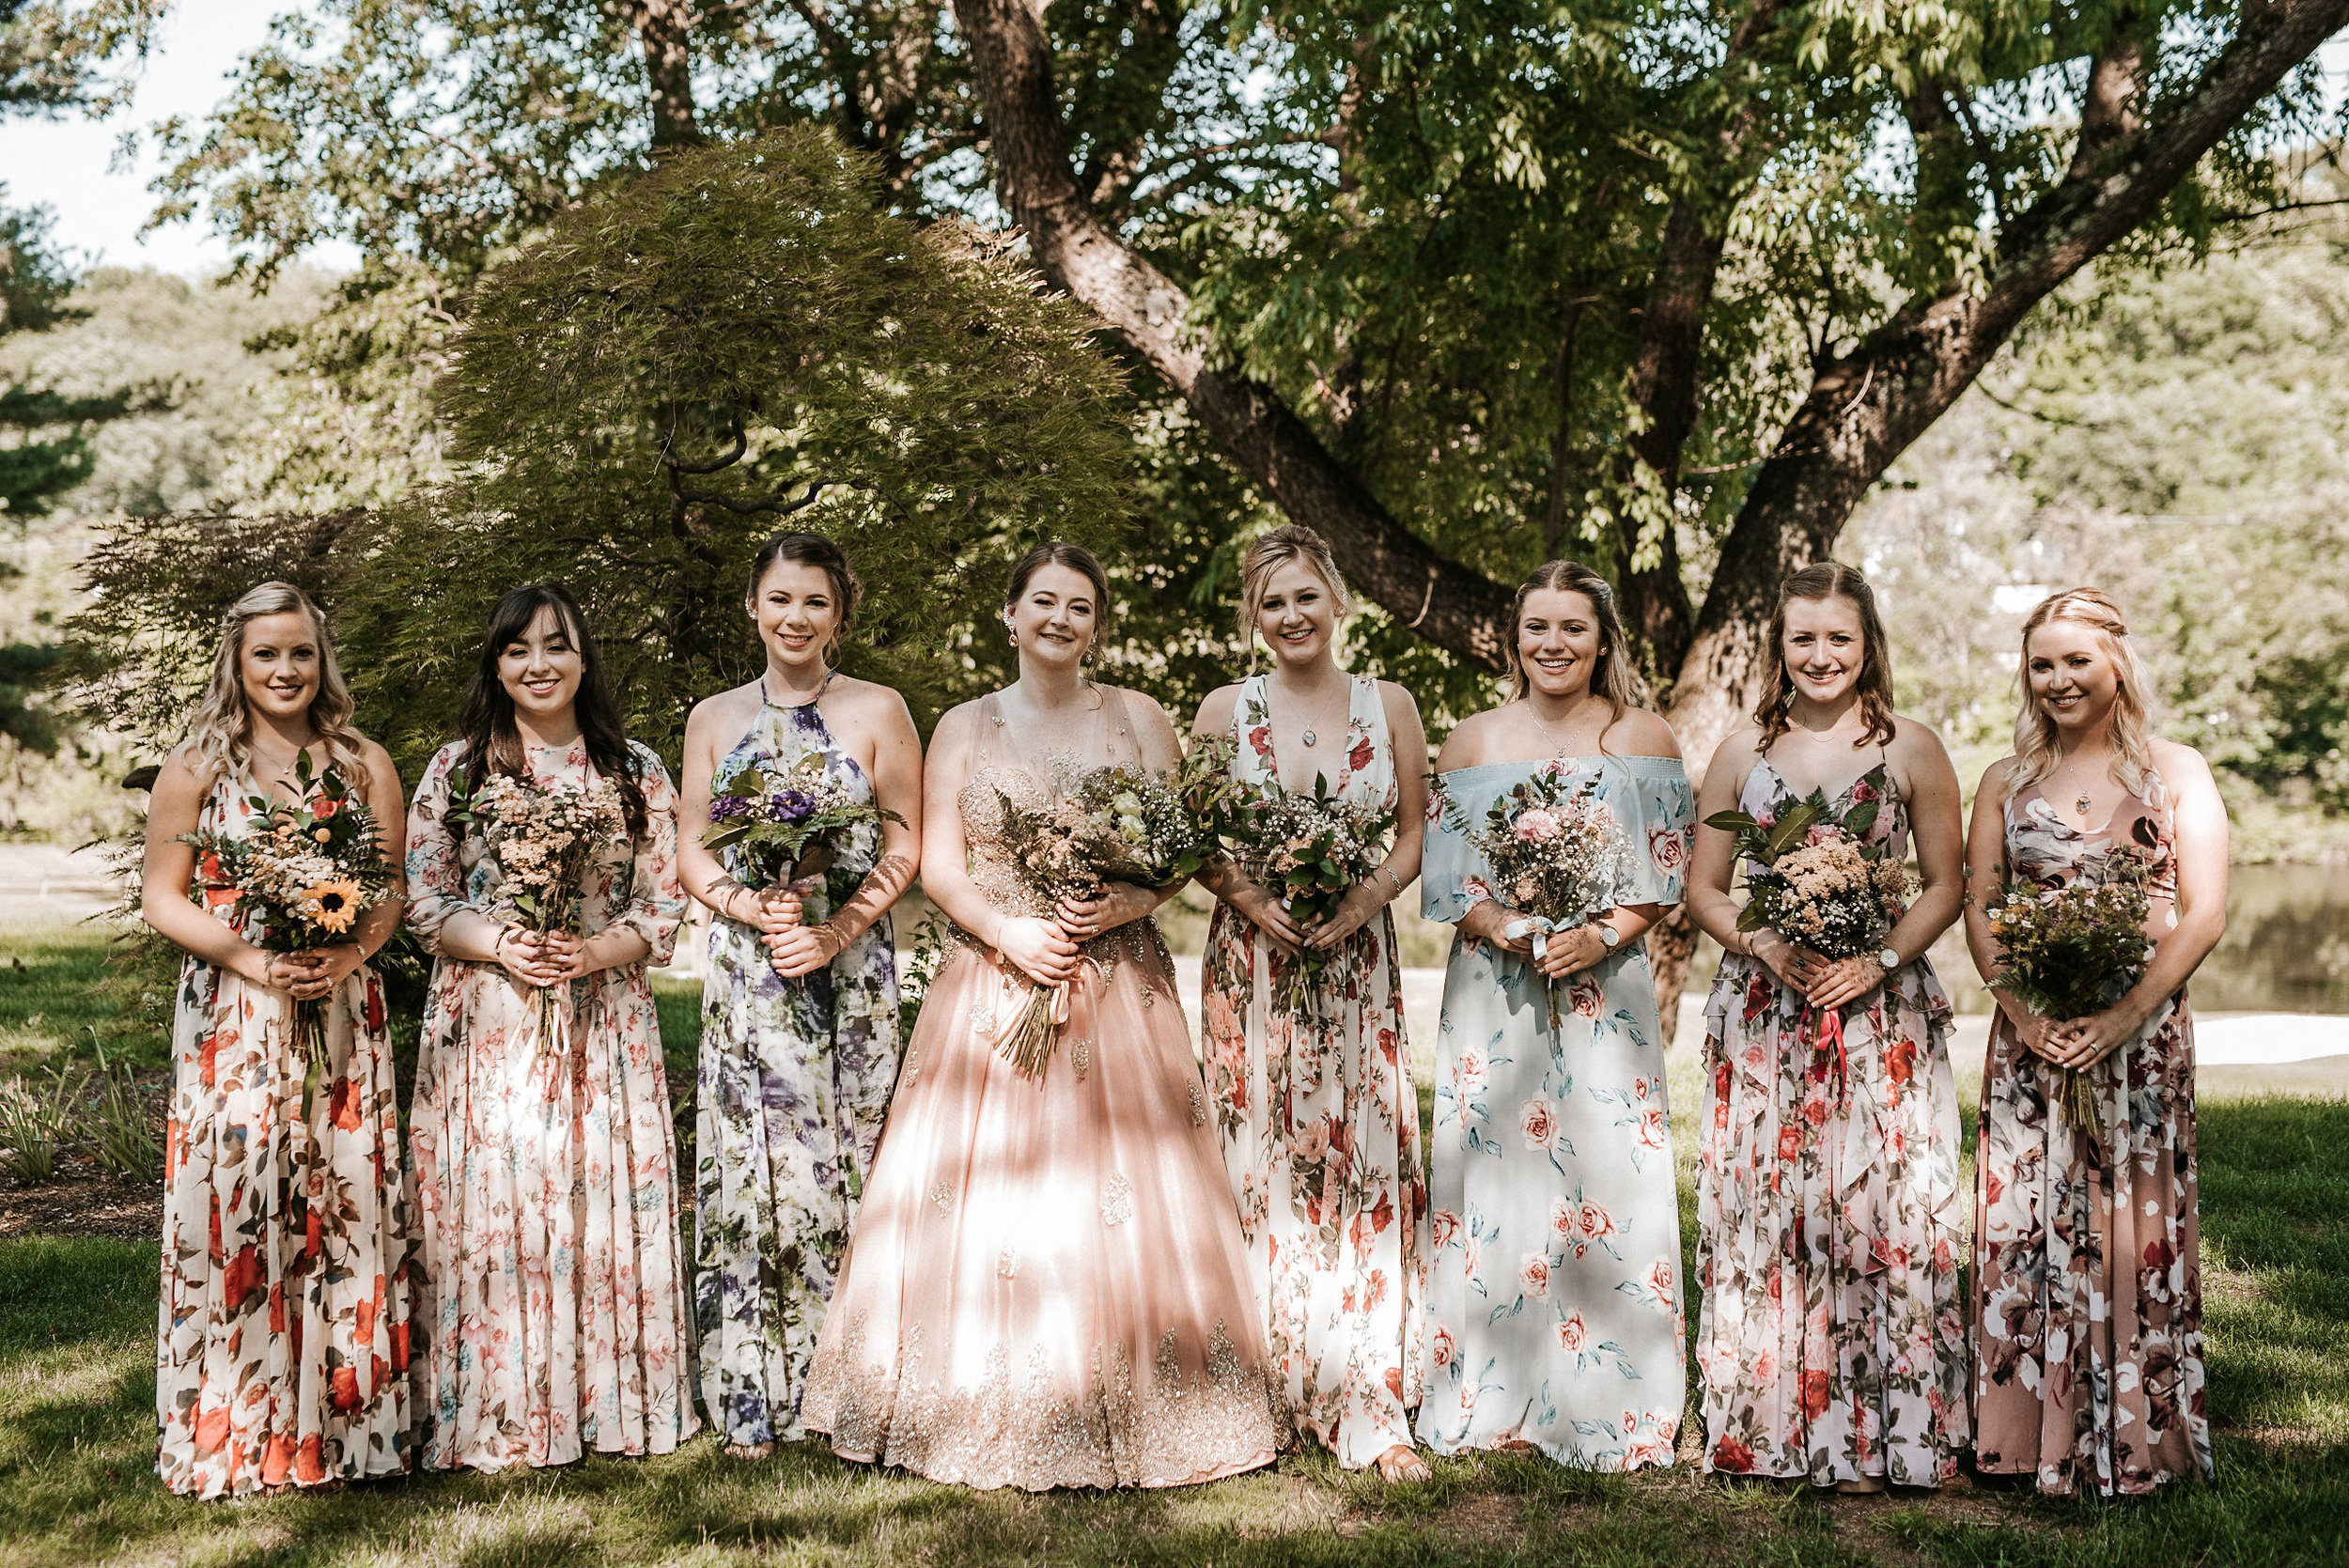 Bride and all the bridesmaids under a tree